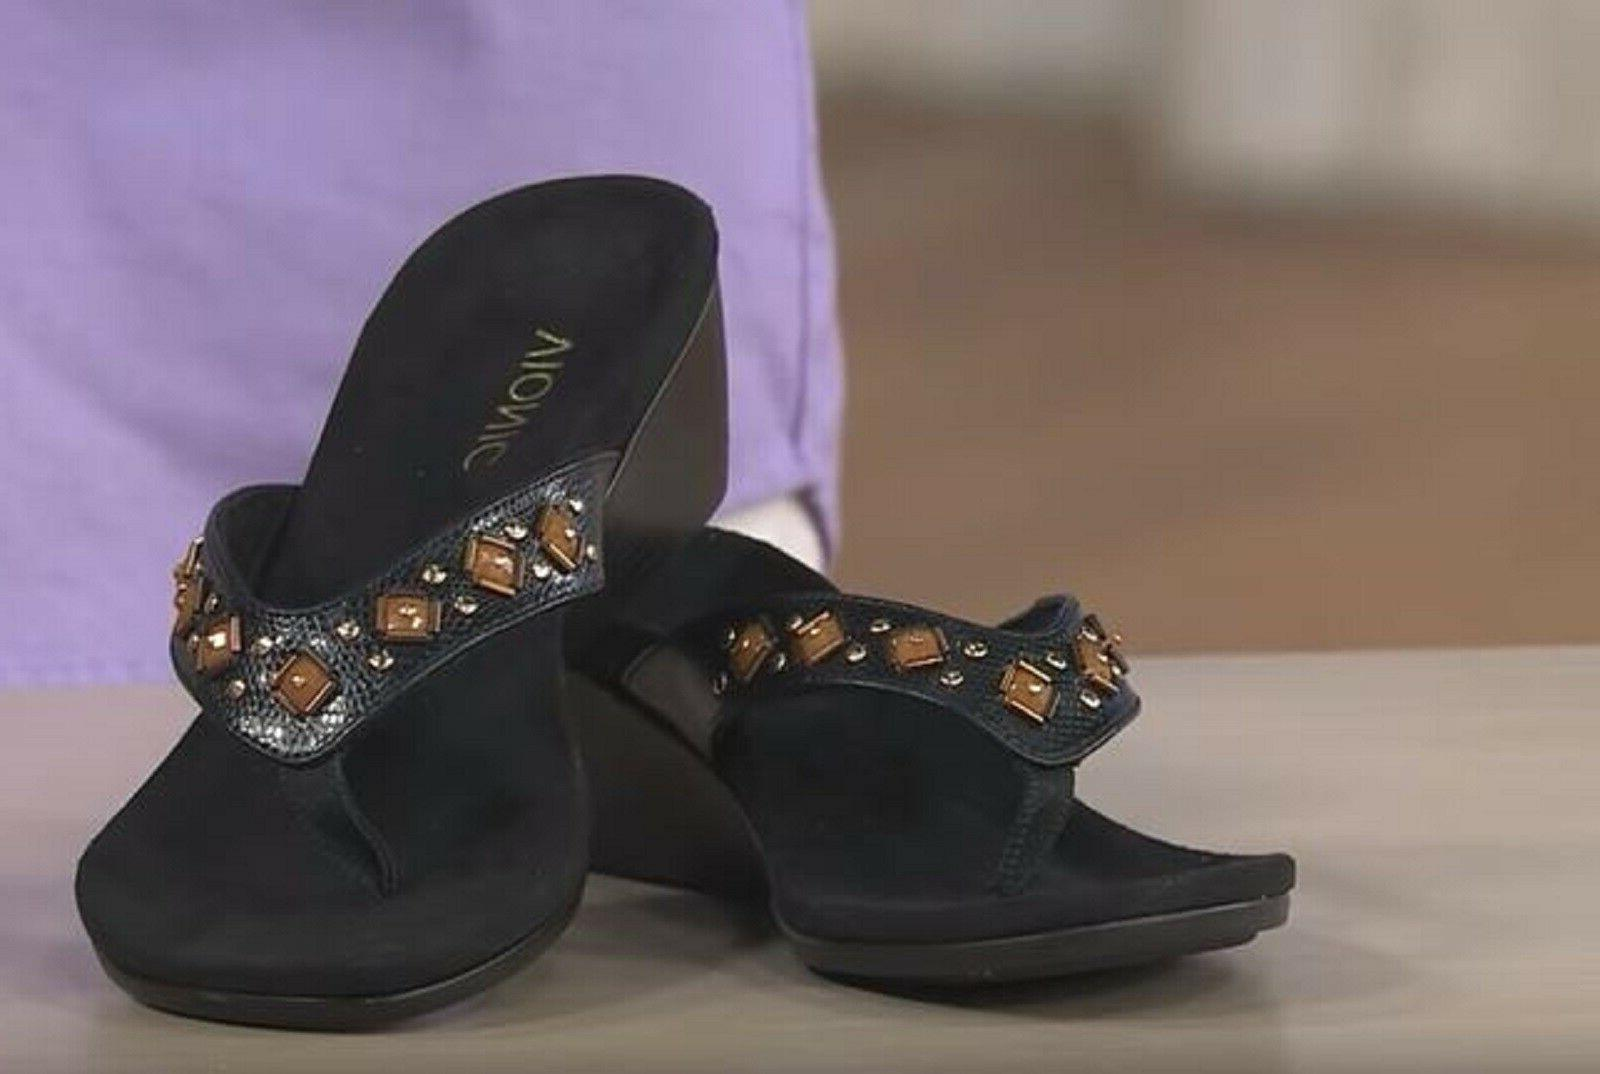 Vionic Orthaheel PARK MARCEAU Embellished Wedge Sandals Size